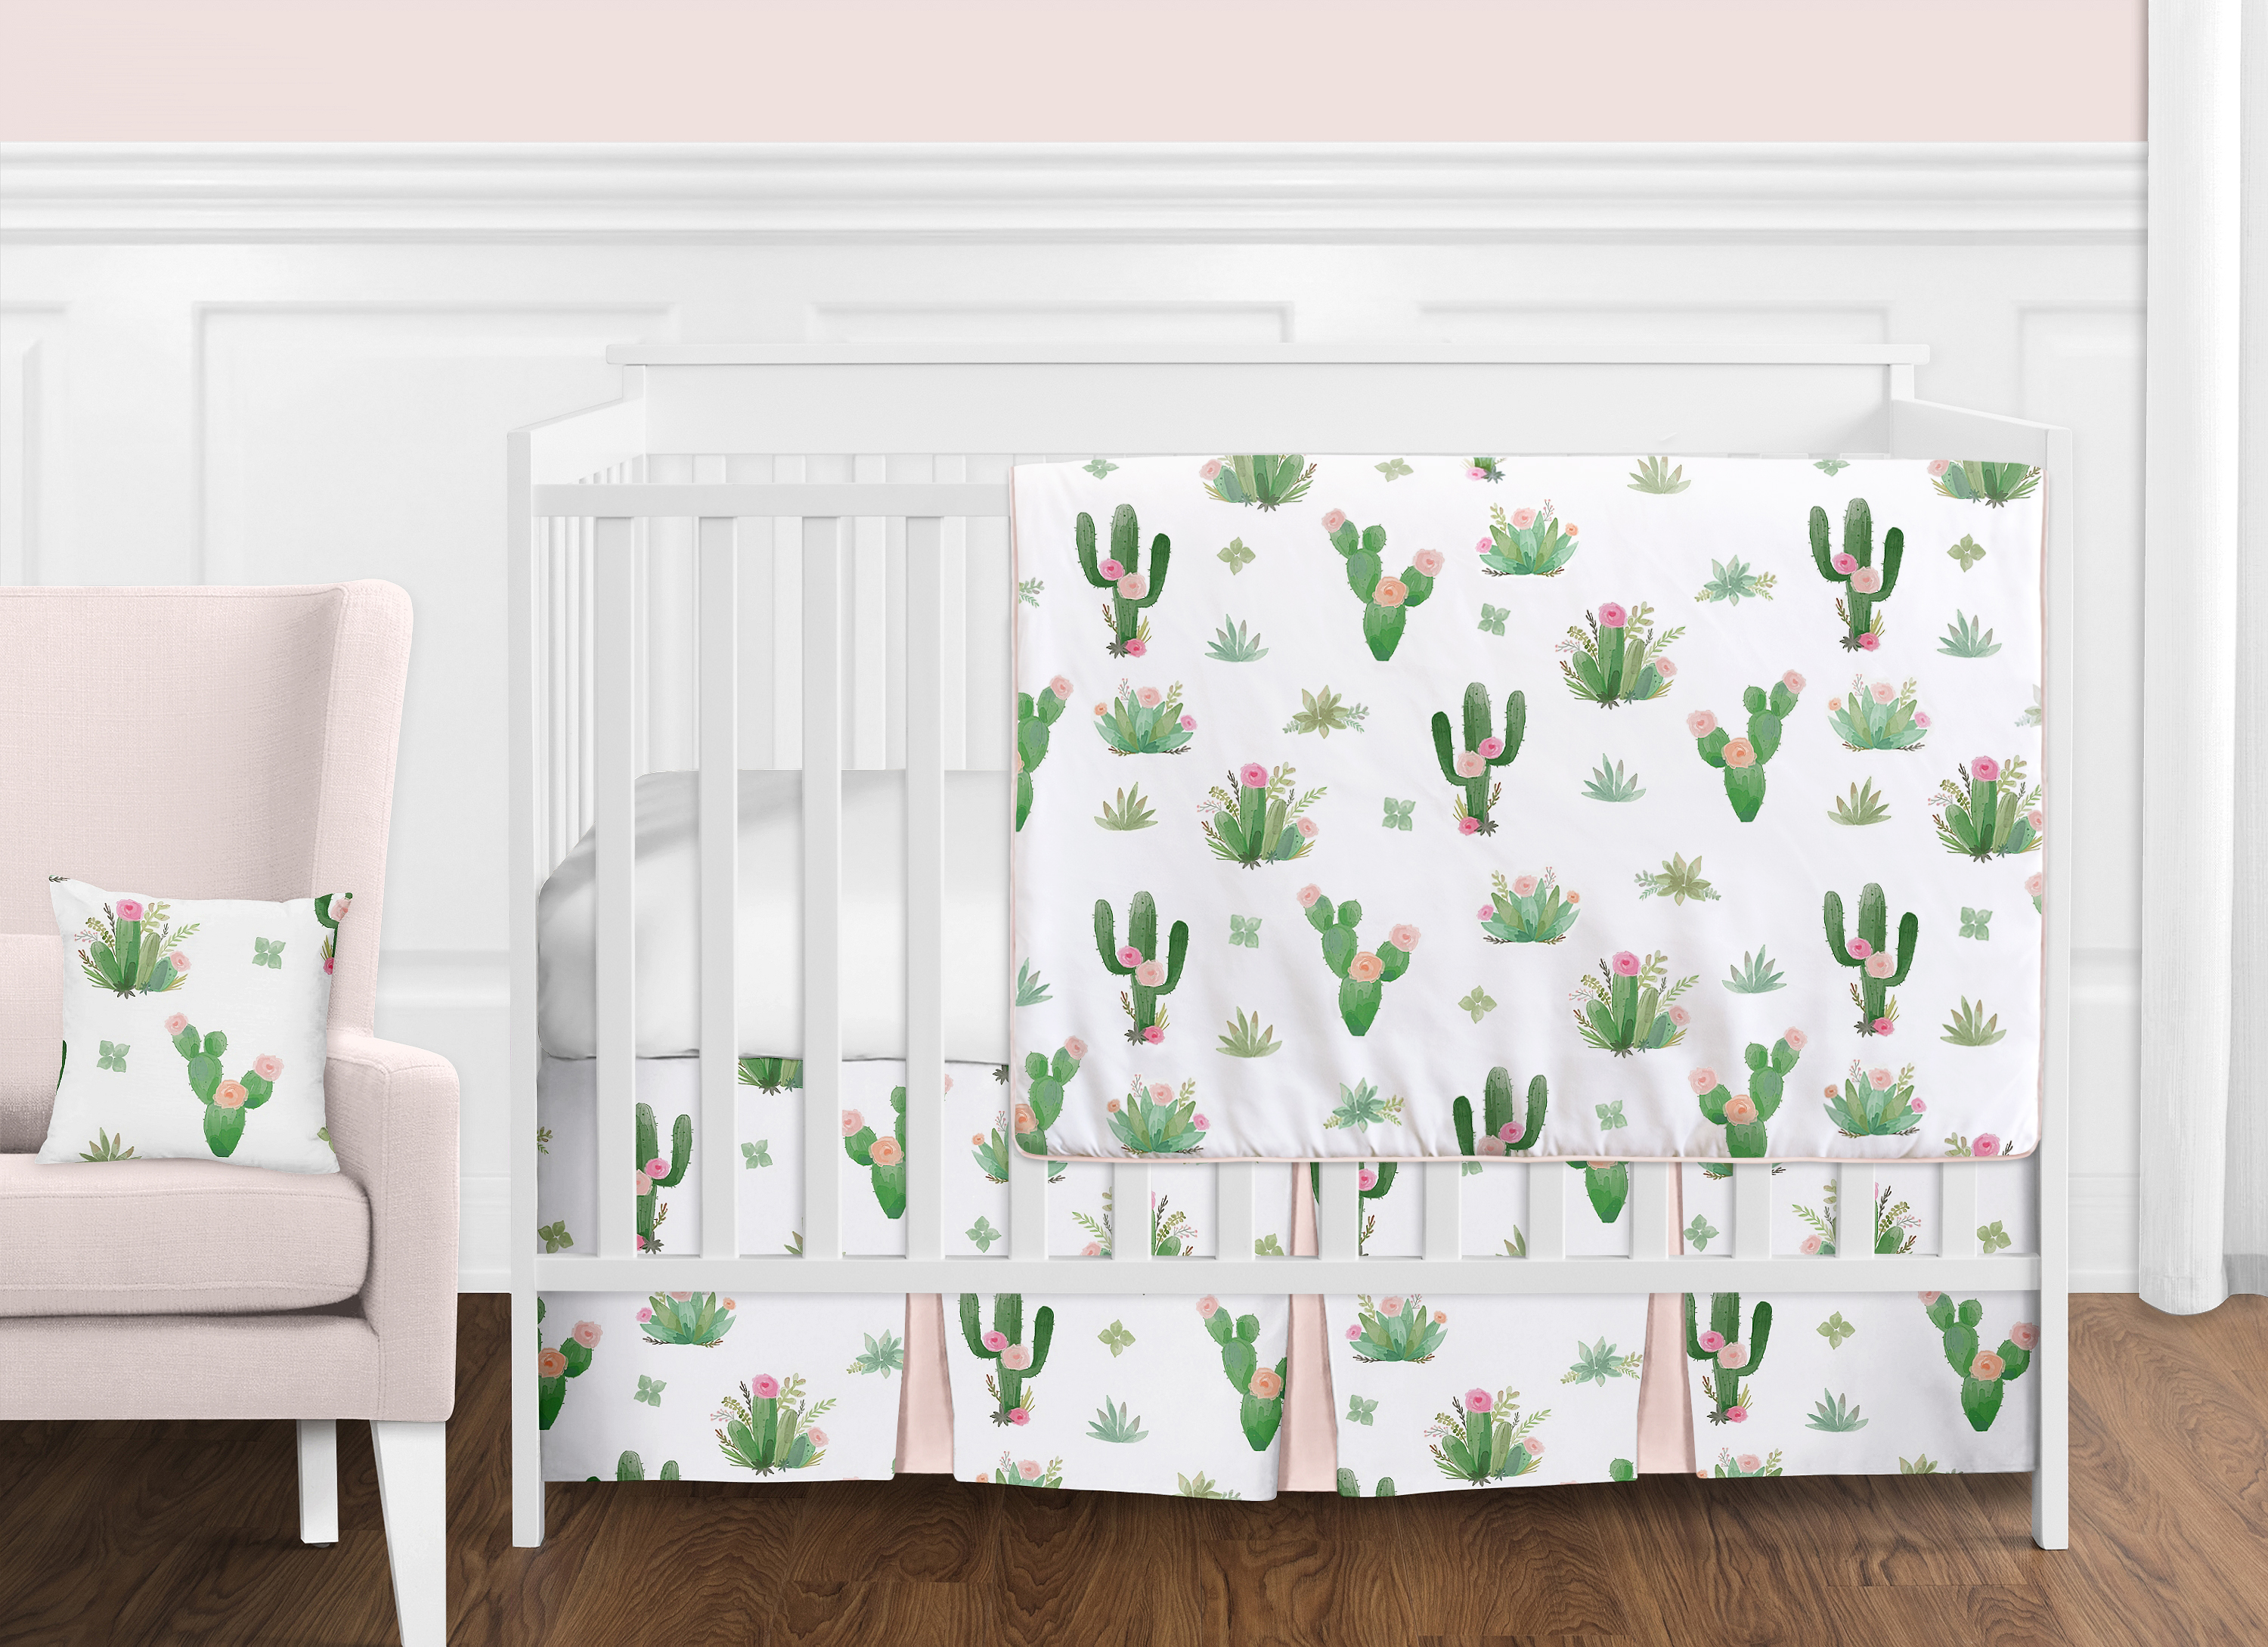 fun over bedding roll image product linens lin br floral floralfun zoom baby cribs pink set crib to